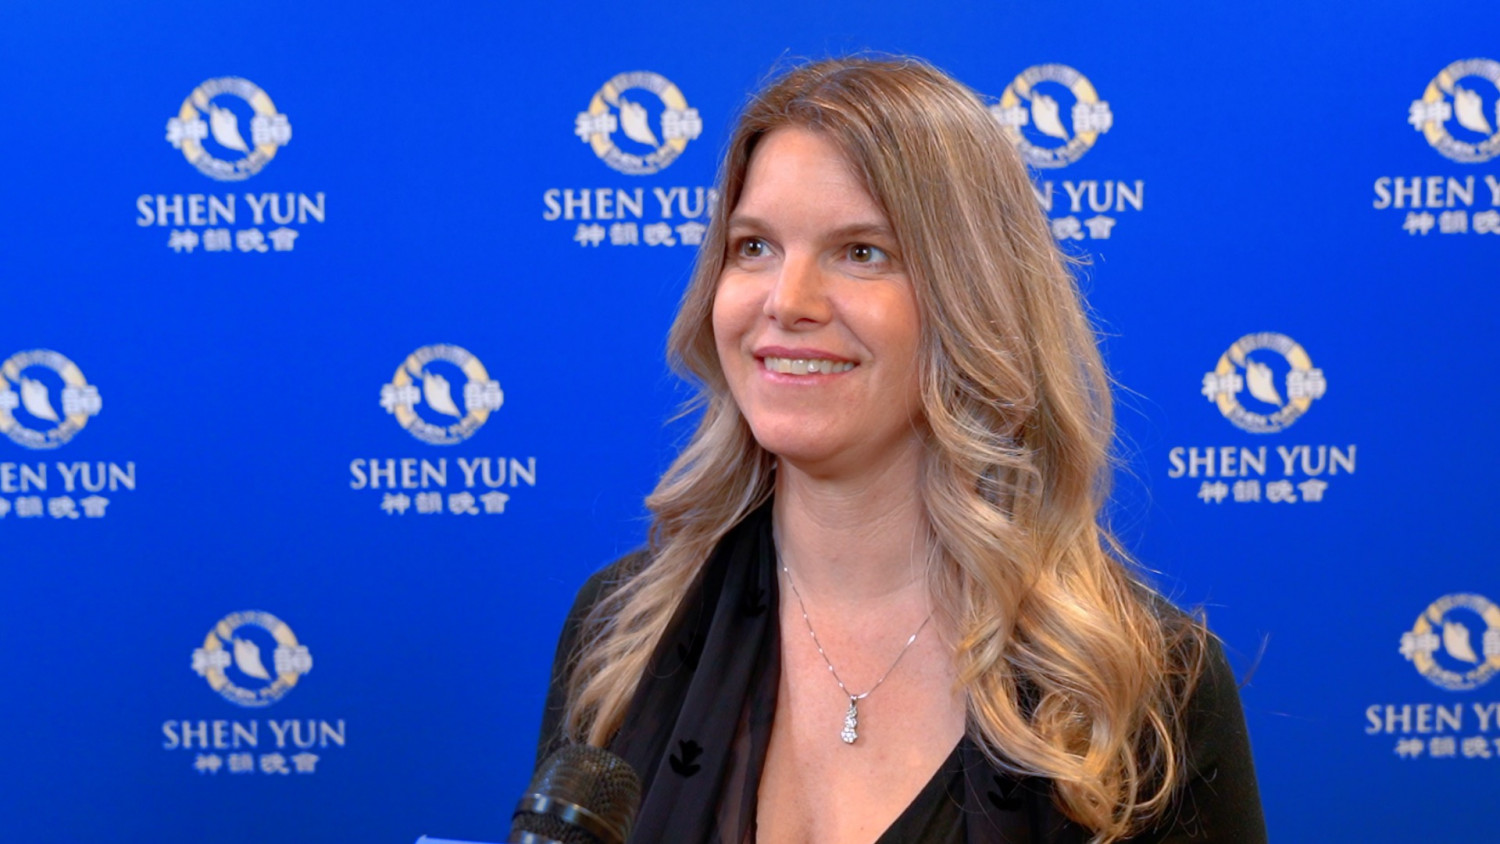 Producer: Shen Yun Performance is 'Otherworldly'